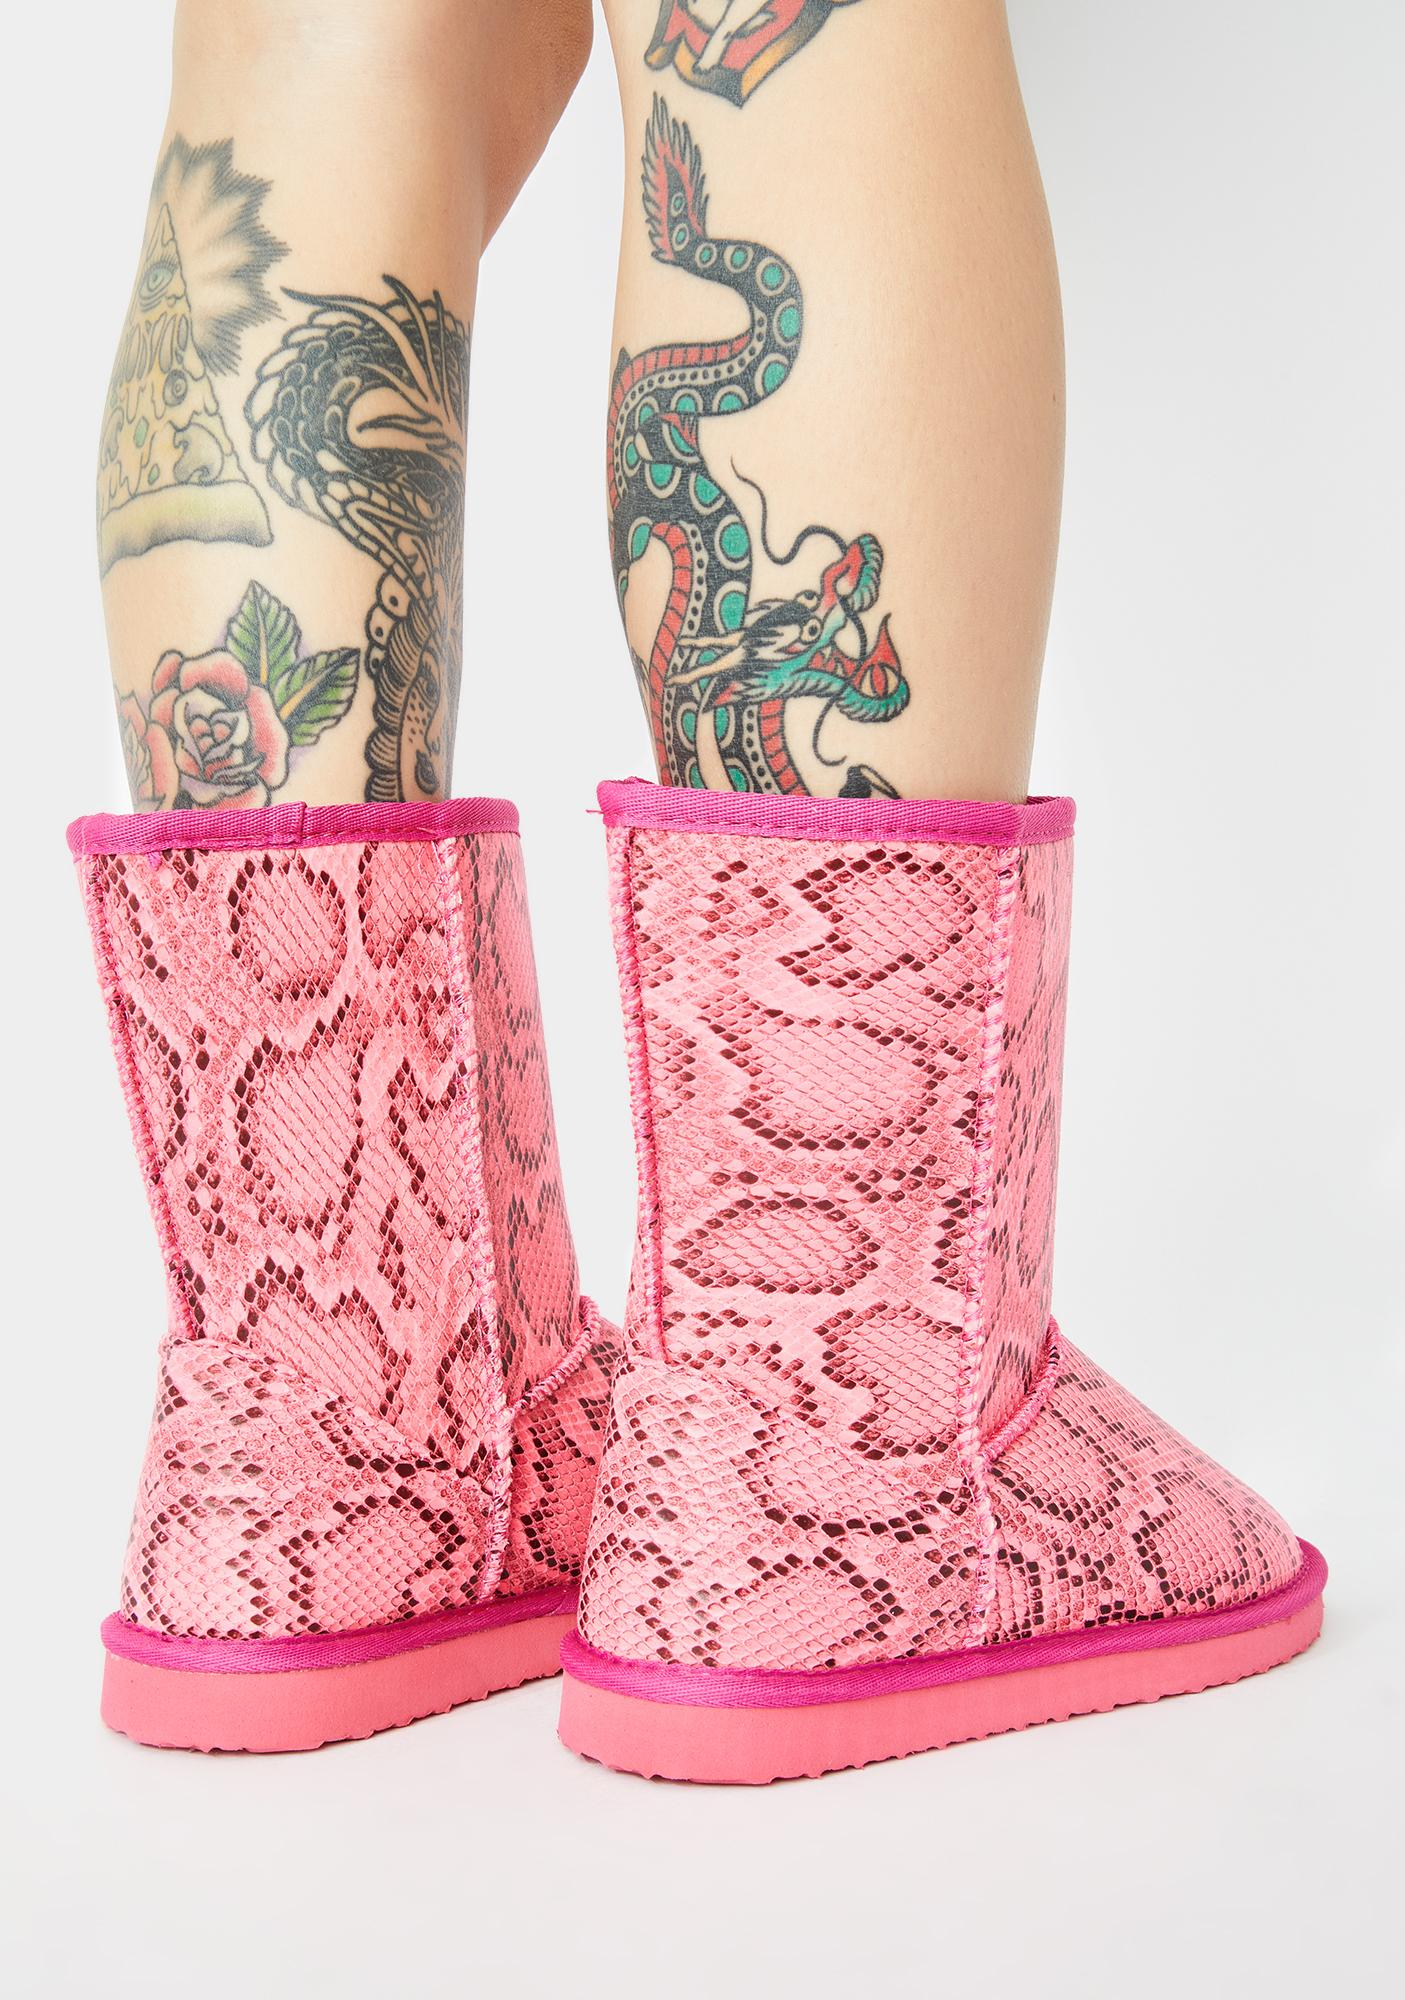 Candy Arctic Crawl Winter Boots